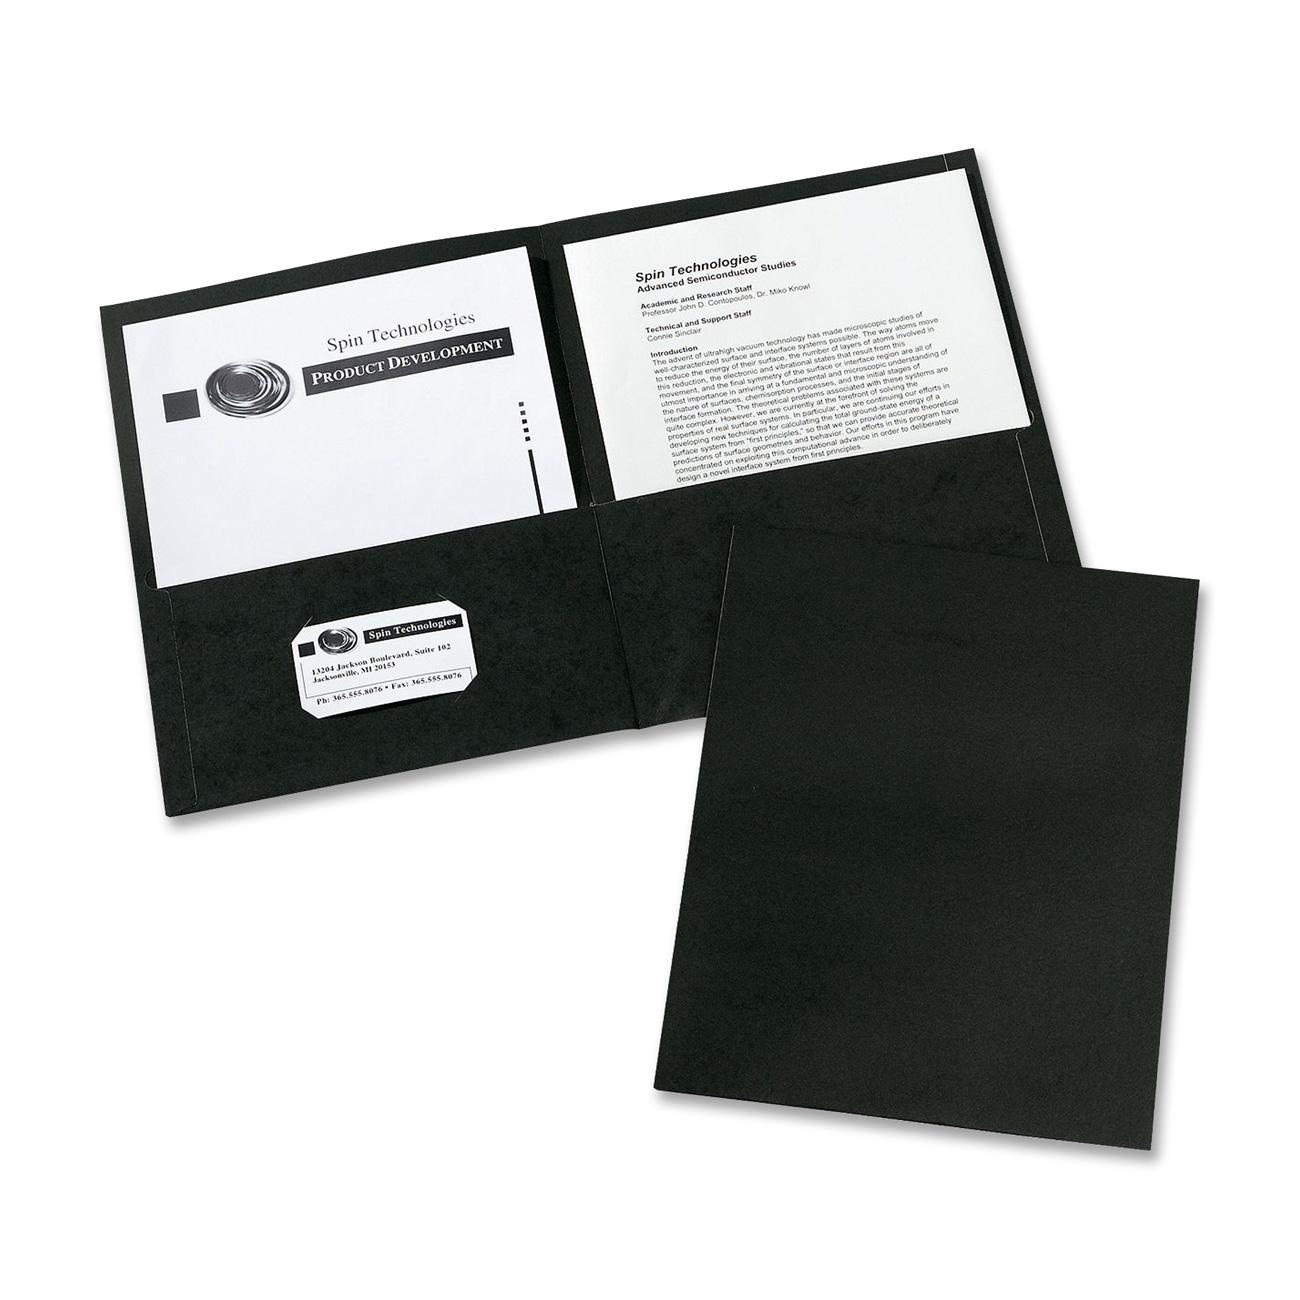 Avery(R) Two-Pocket Folders 47988, Black, Box of 25 by Avery